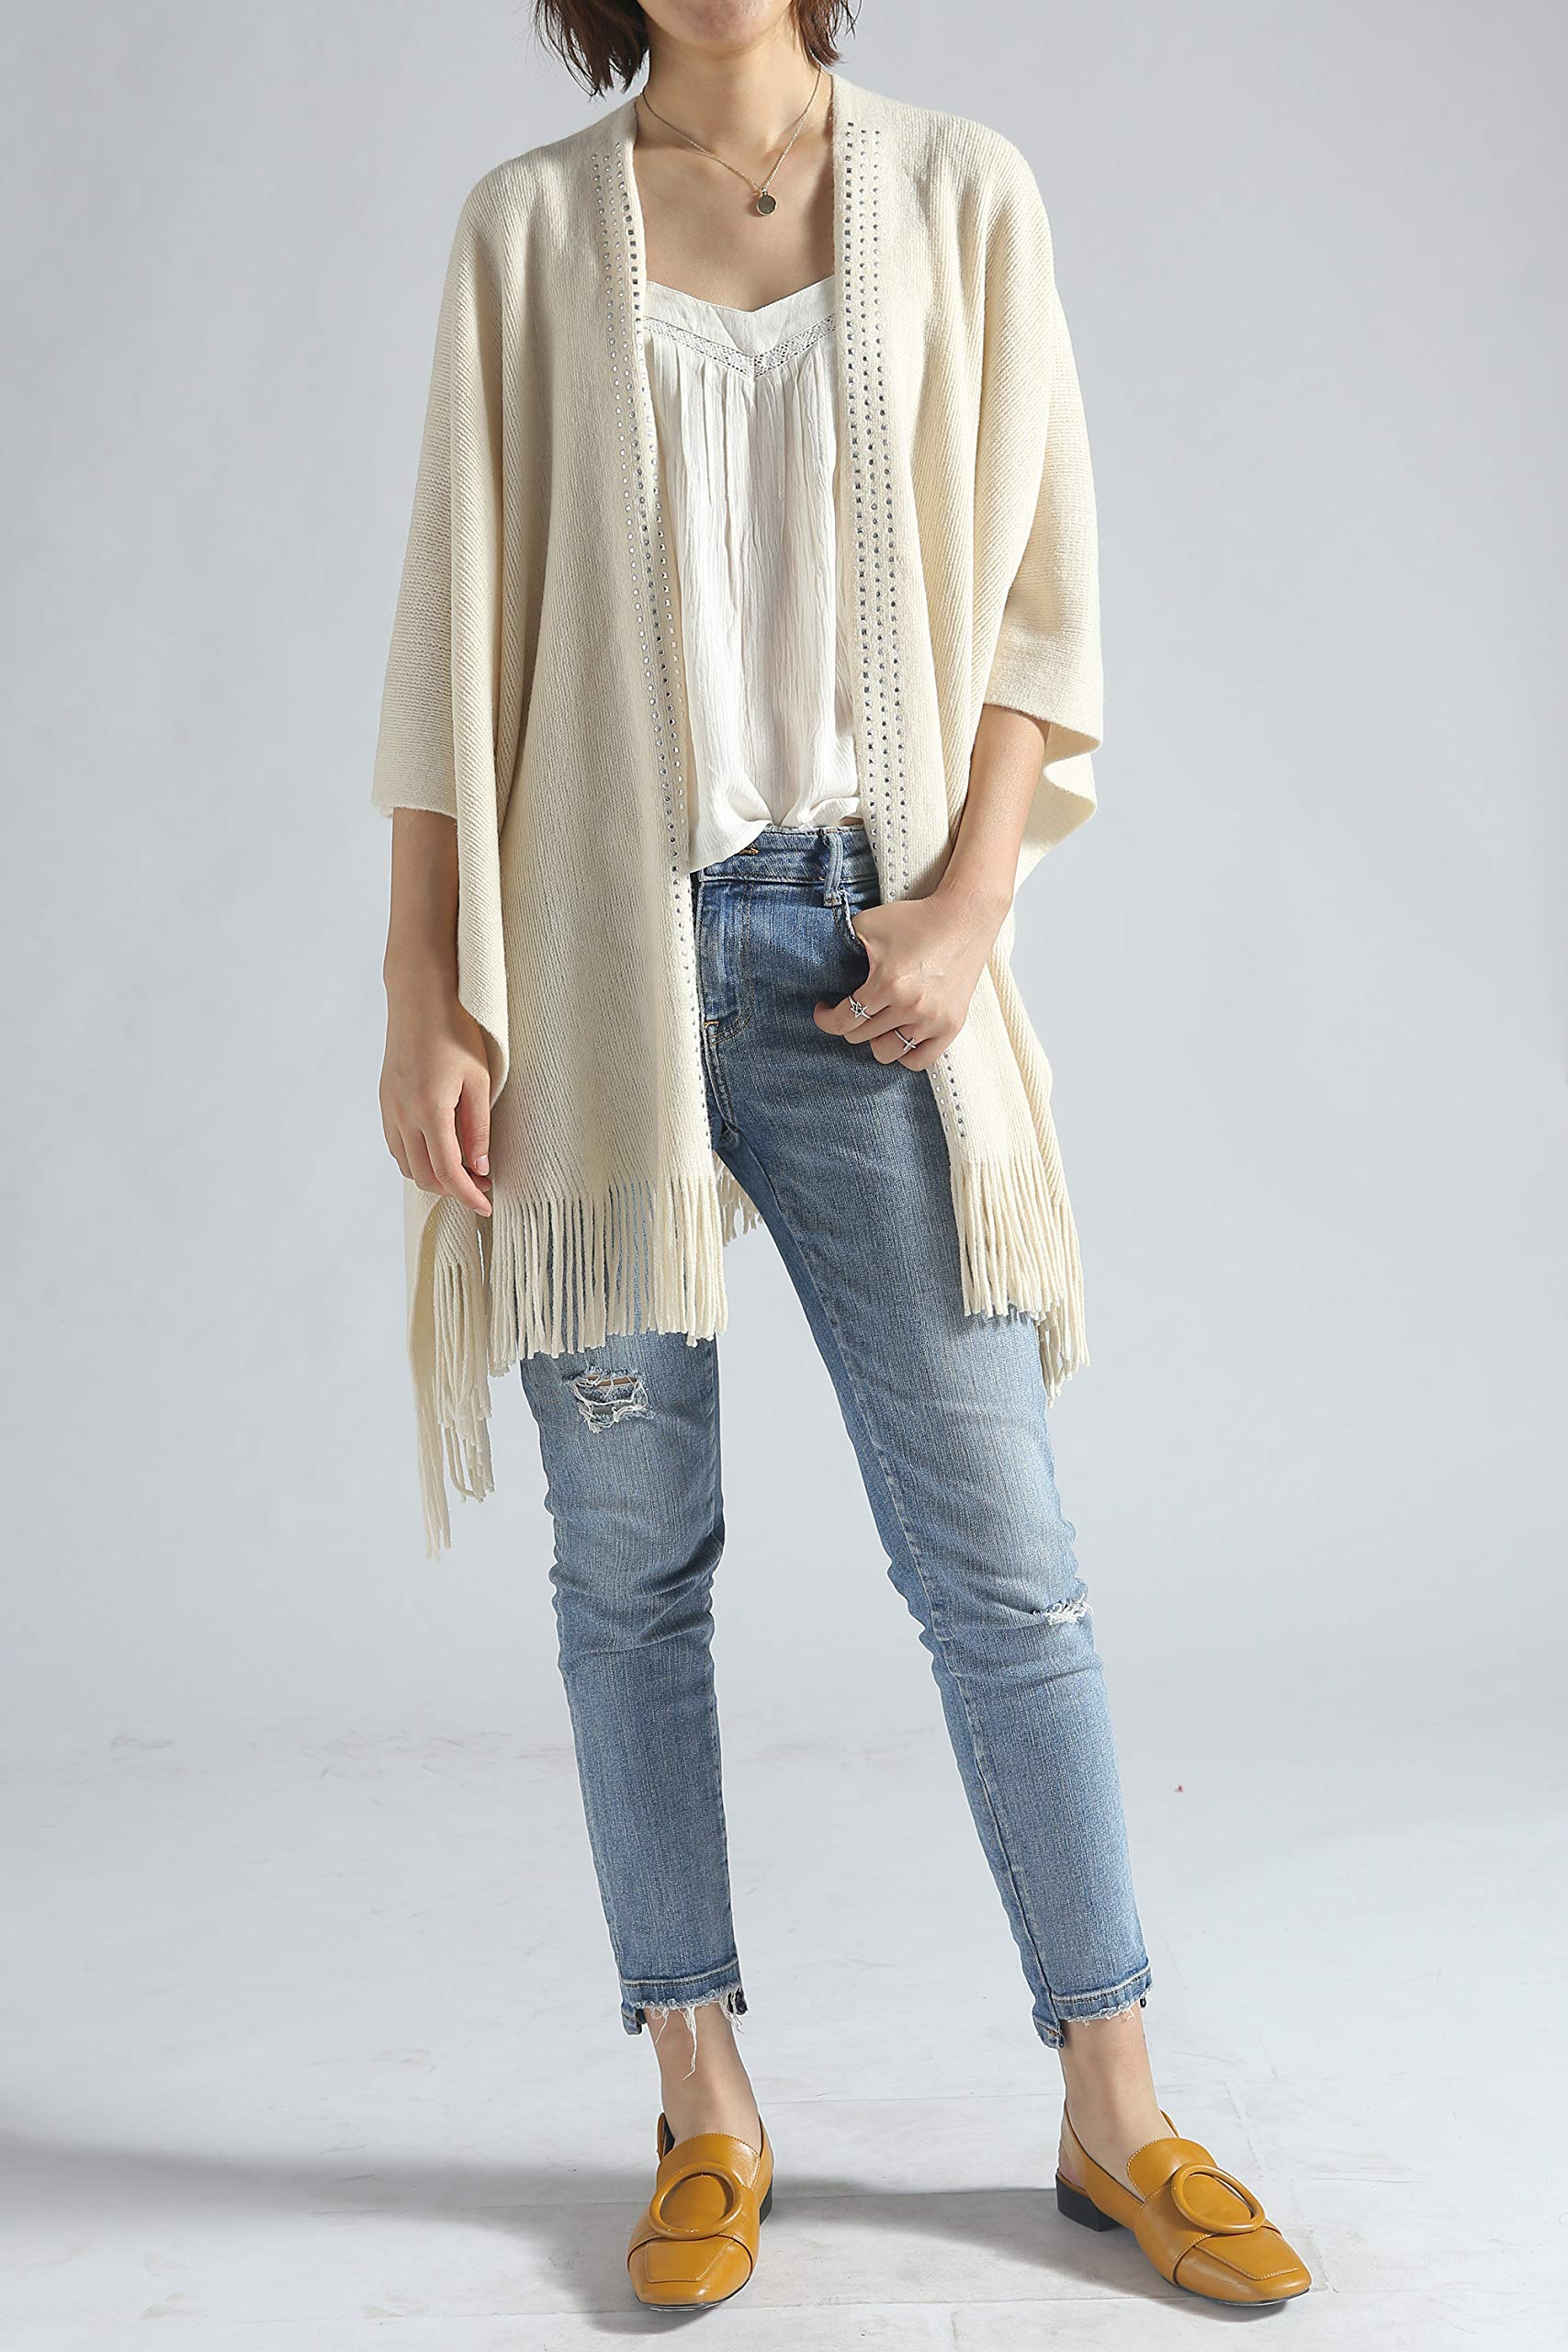 Women Poncho Shawl Cardigan Open Front Elegant Cape Wrap by Moss Rose (Image #5)